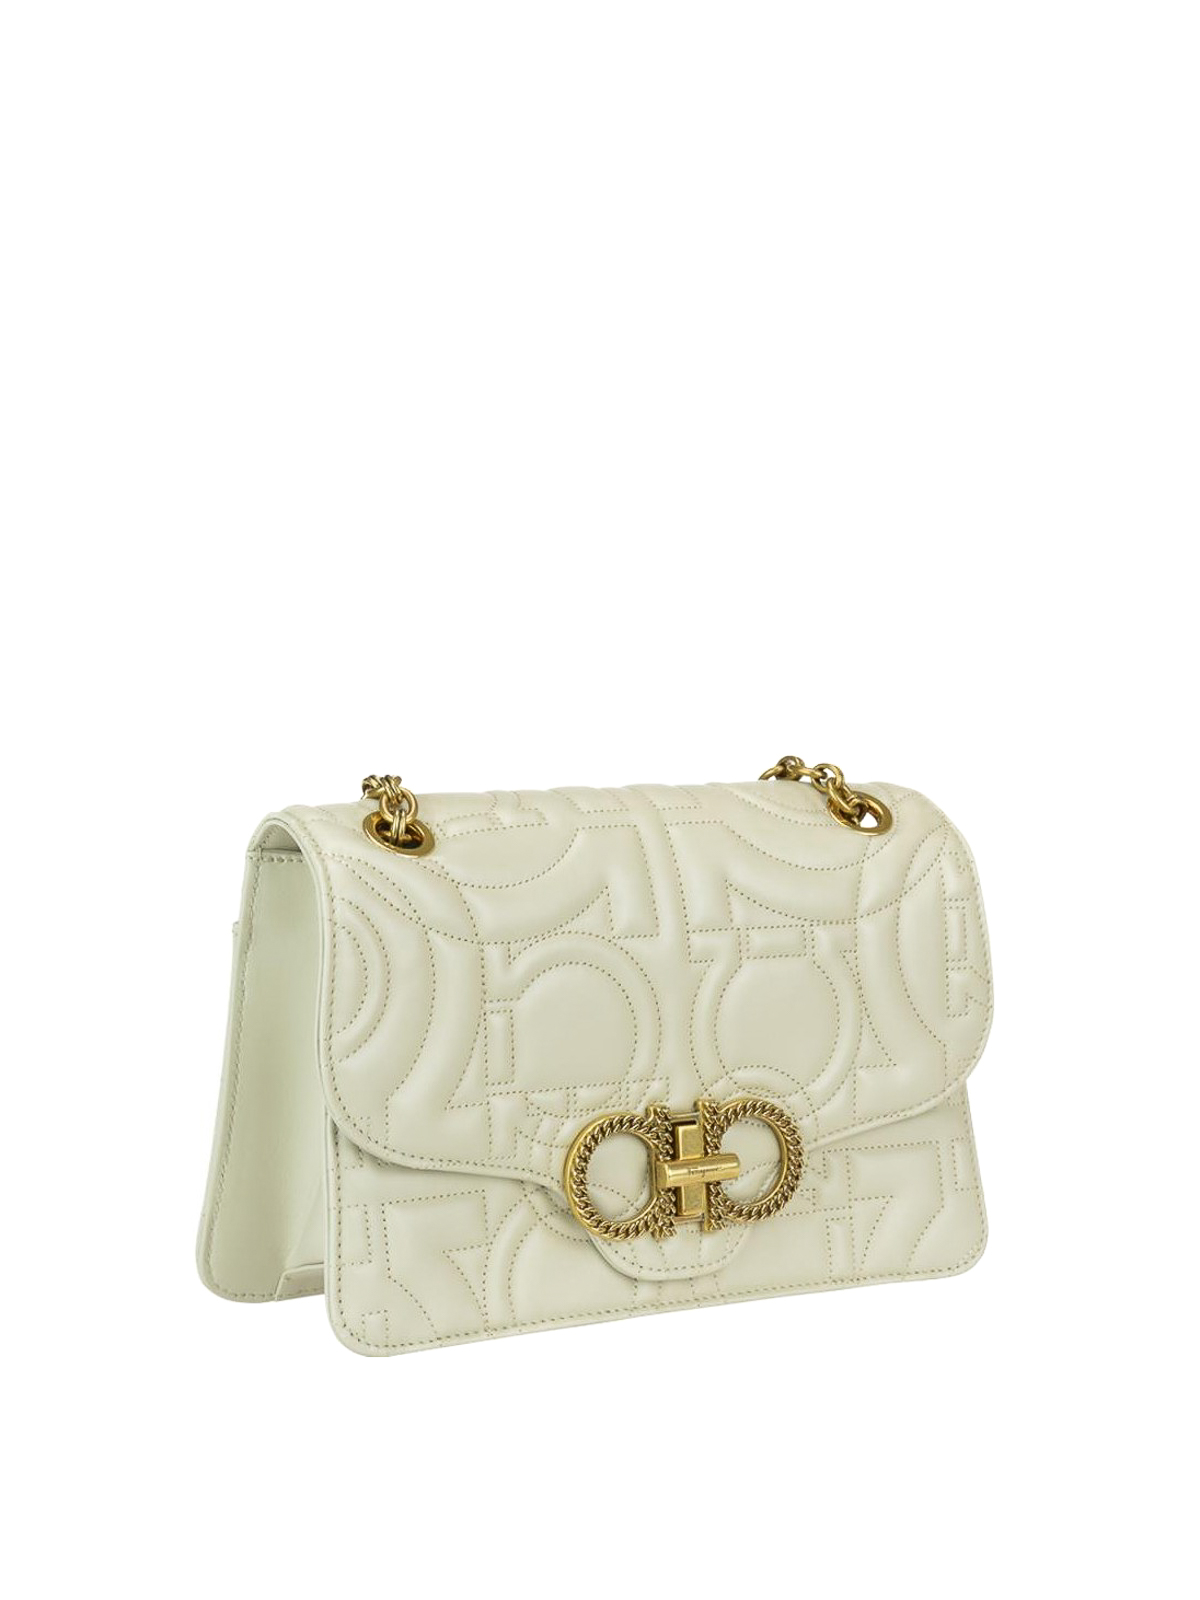 SALVATORE FERRAGAMO  shoulder bags online - Gancini white quilted leather  shoulder bag 4aac9b300e